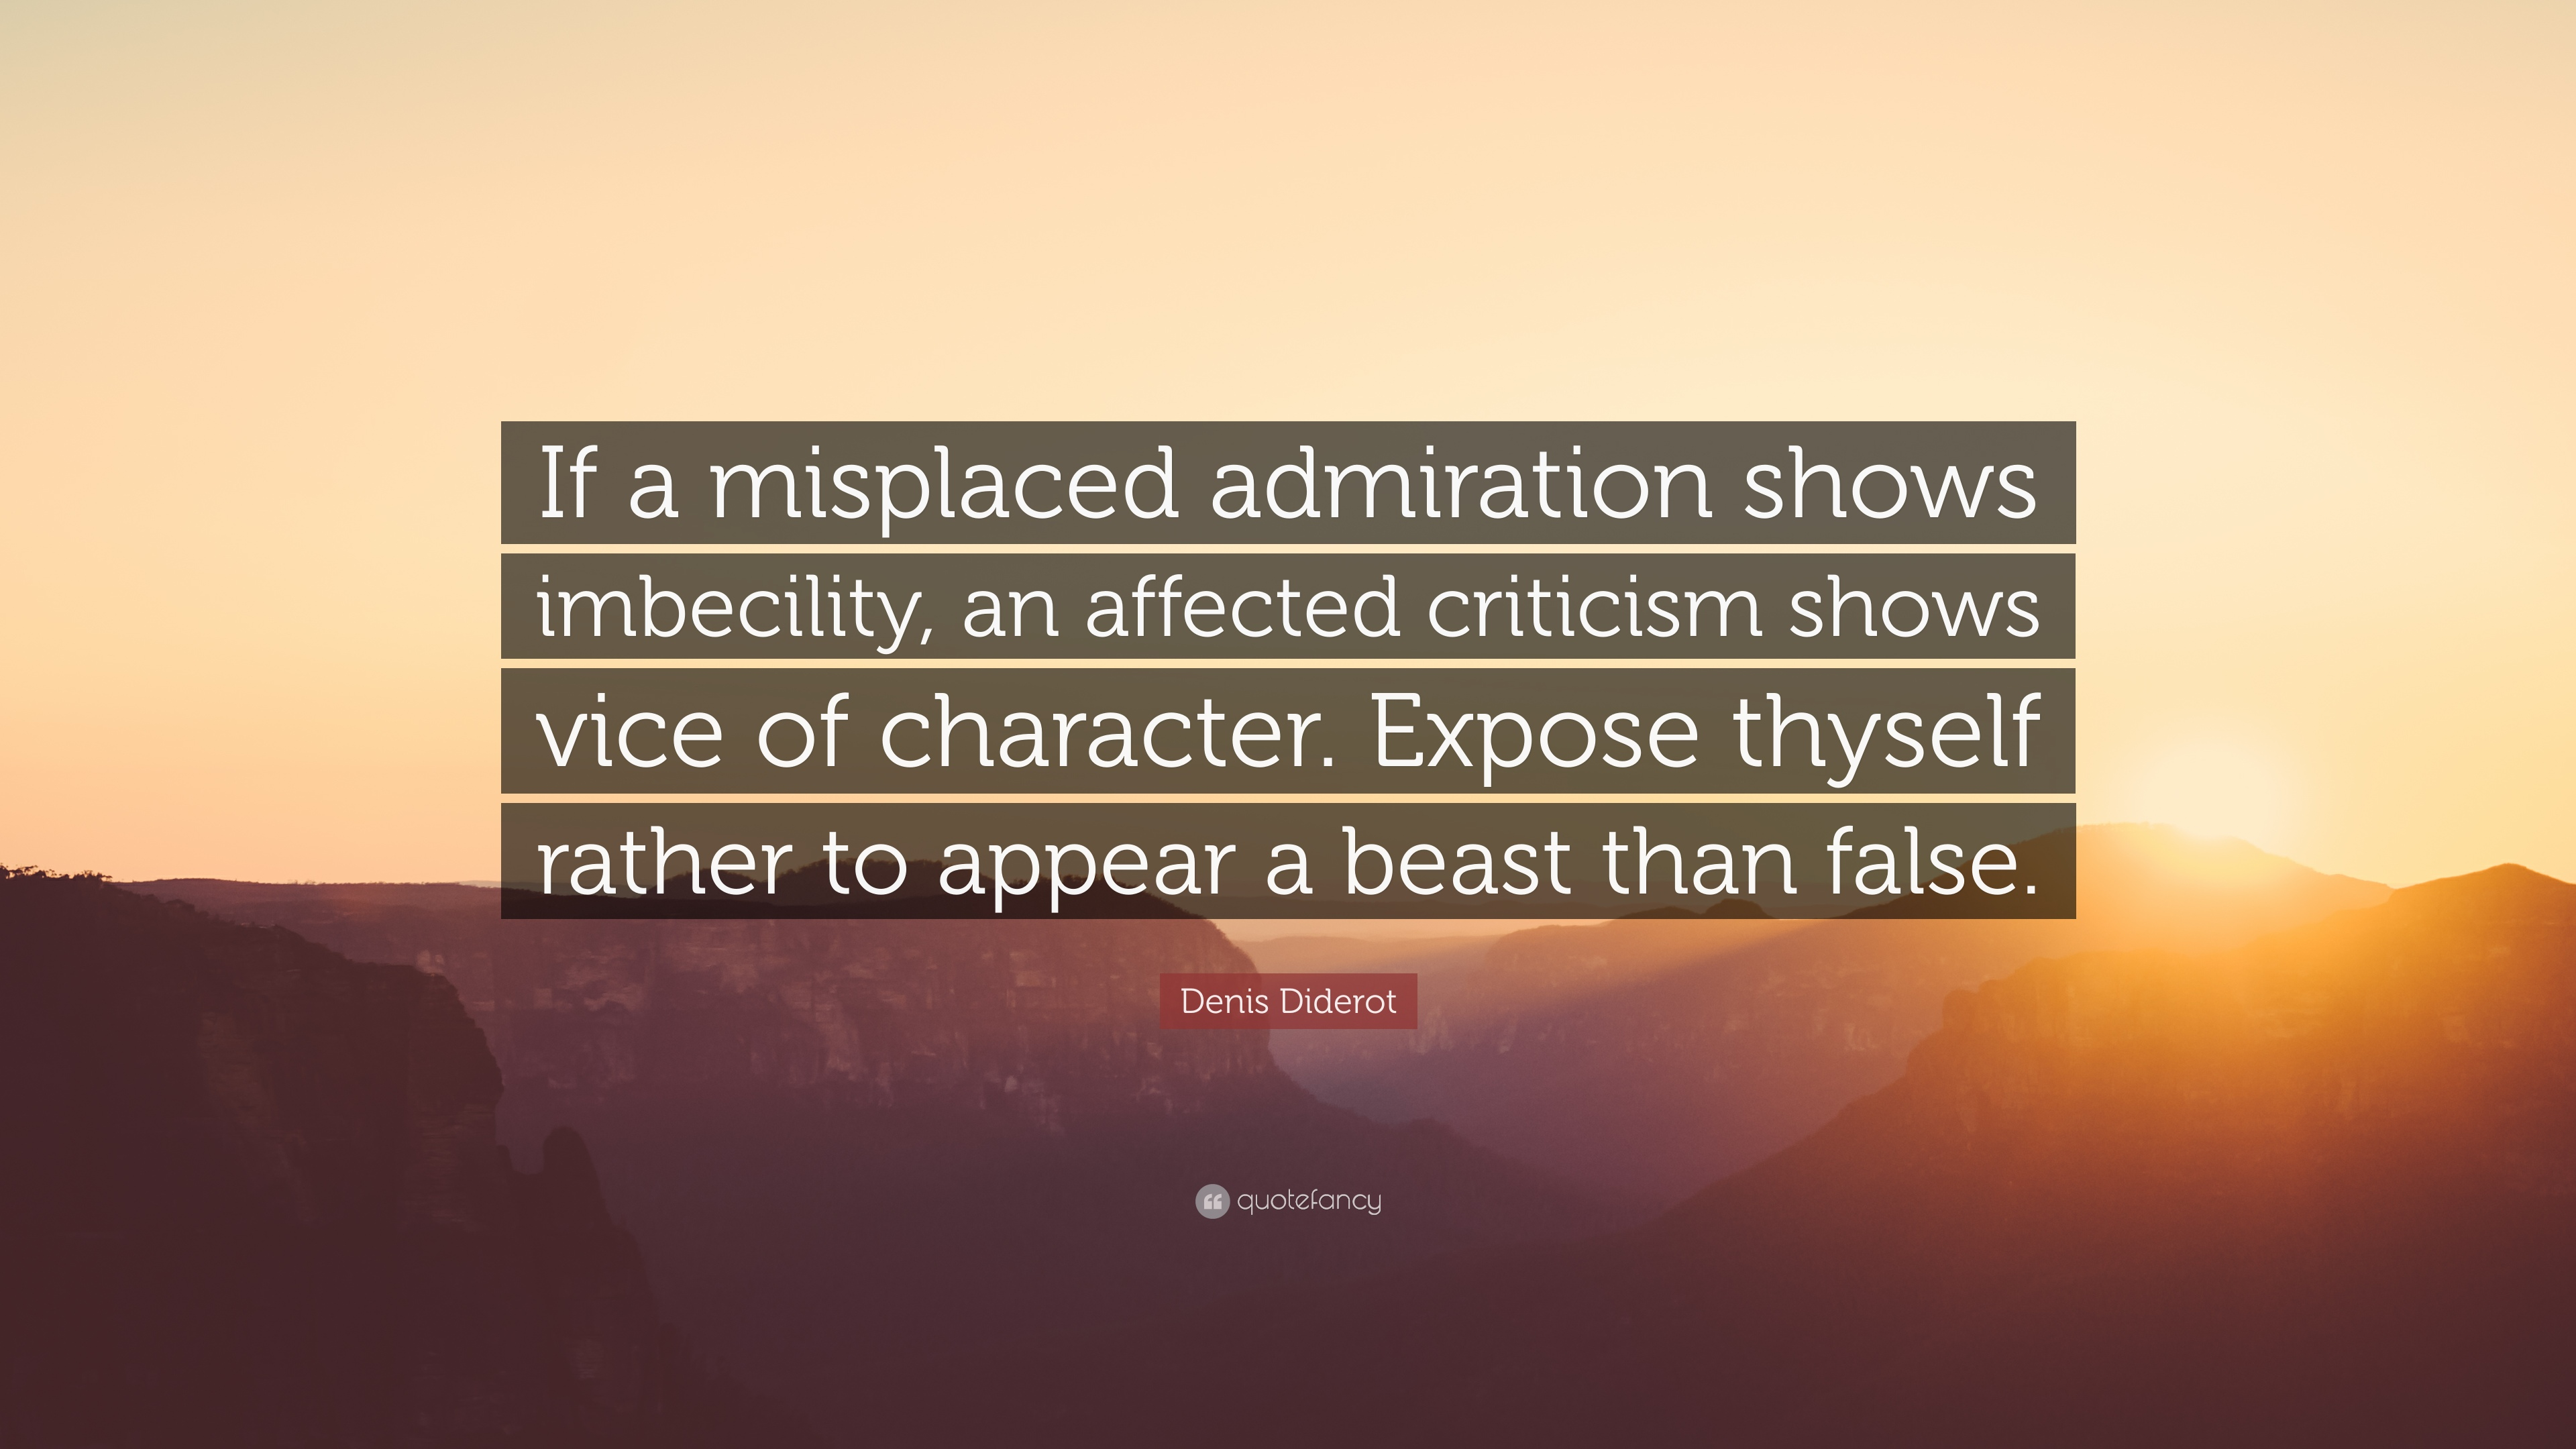 Denis Diderot Quote If A Misplaced Admiration Shows Imbecility An Affected Criticism